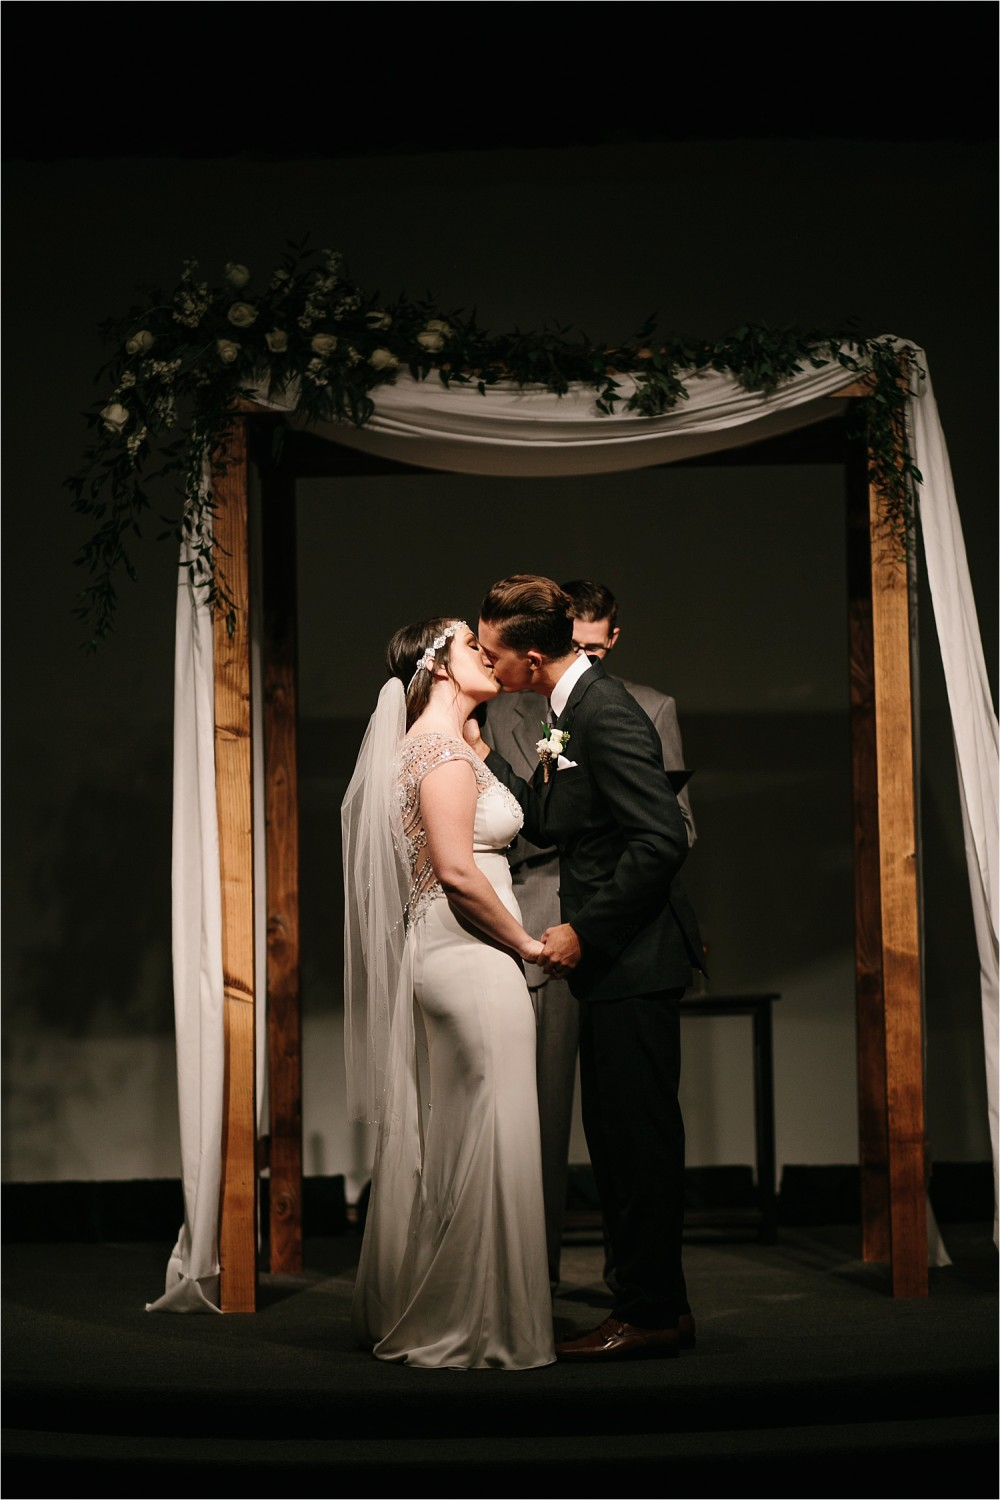 whittney-drew-__-an-intimate-wine-and-navy-wedding-in-an-industrial-venue-at-loft-123-in-paris-tx-by-north-texas-wedding-photographer-rachel-meagan-photography-_-064